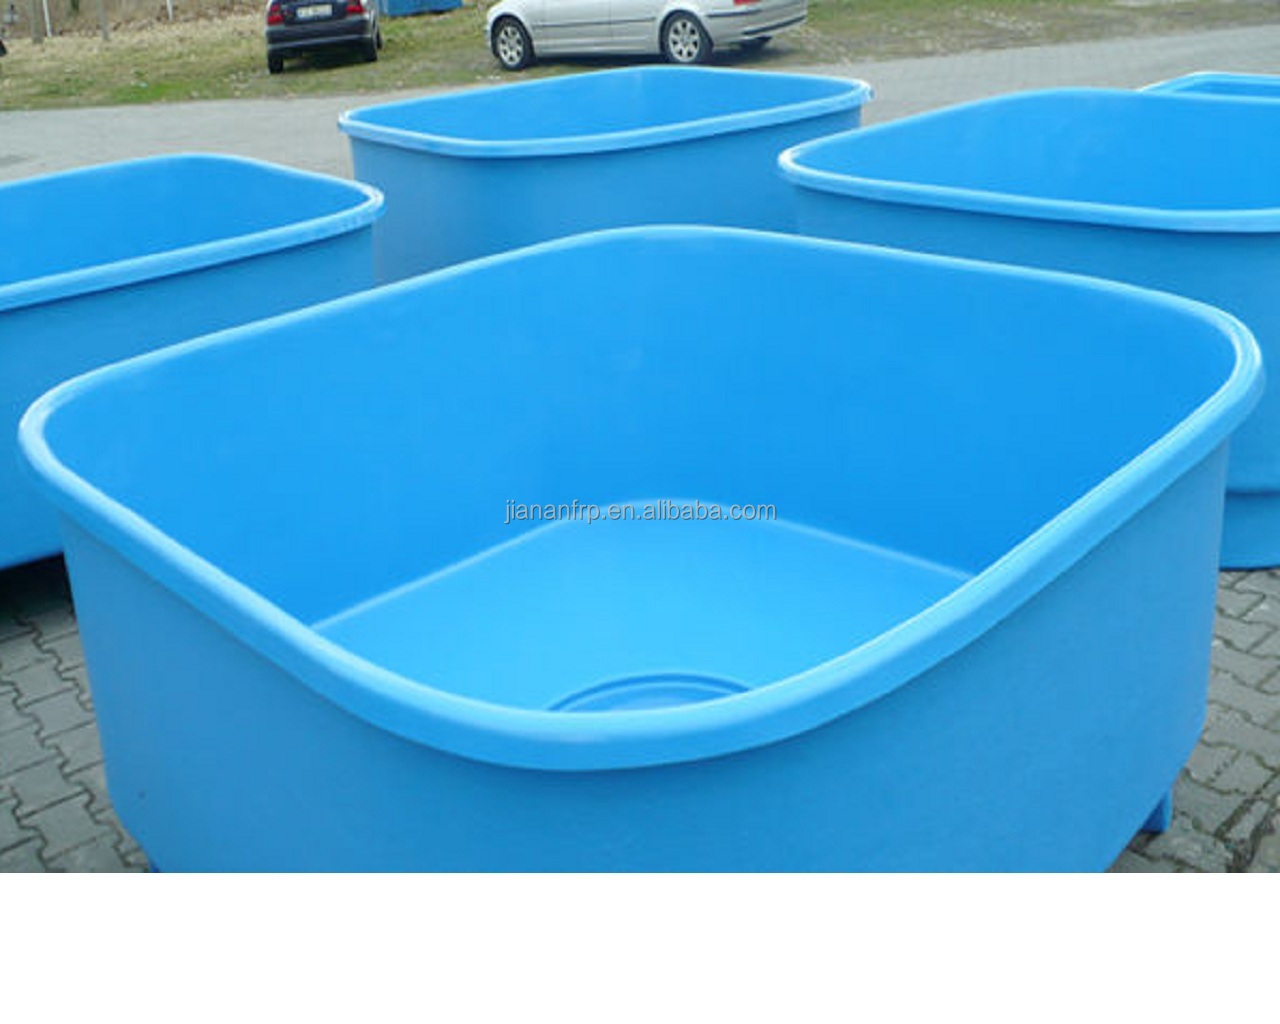 Fiberglass fish tank buy fiberglass fish tank fish tank for Fish pond tanks for sale